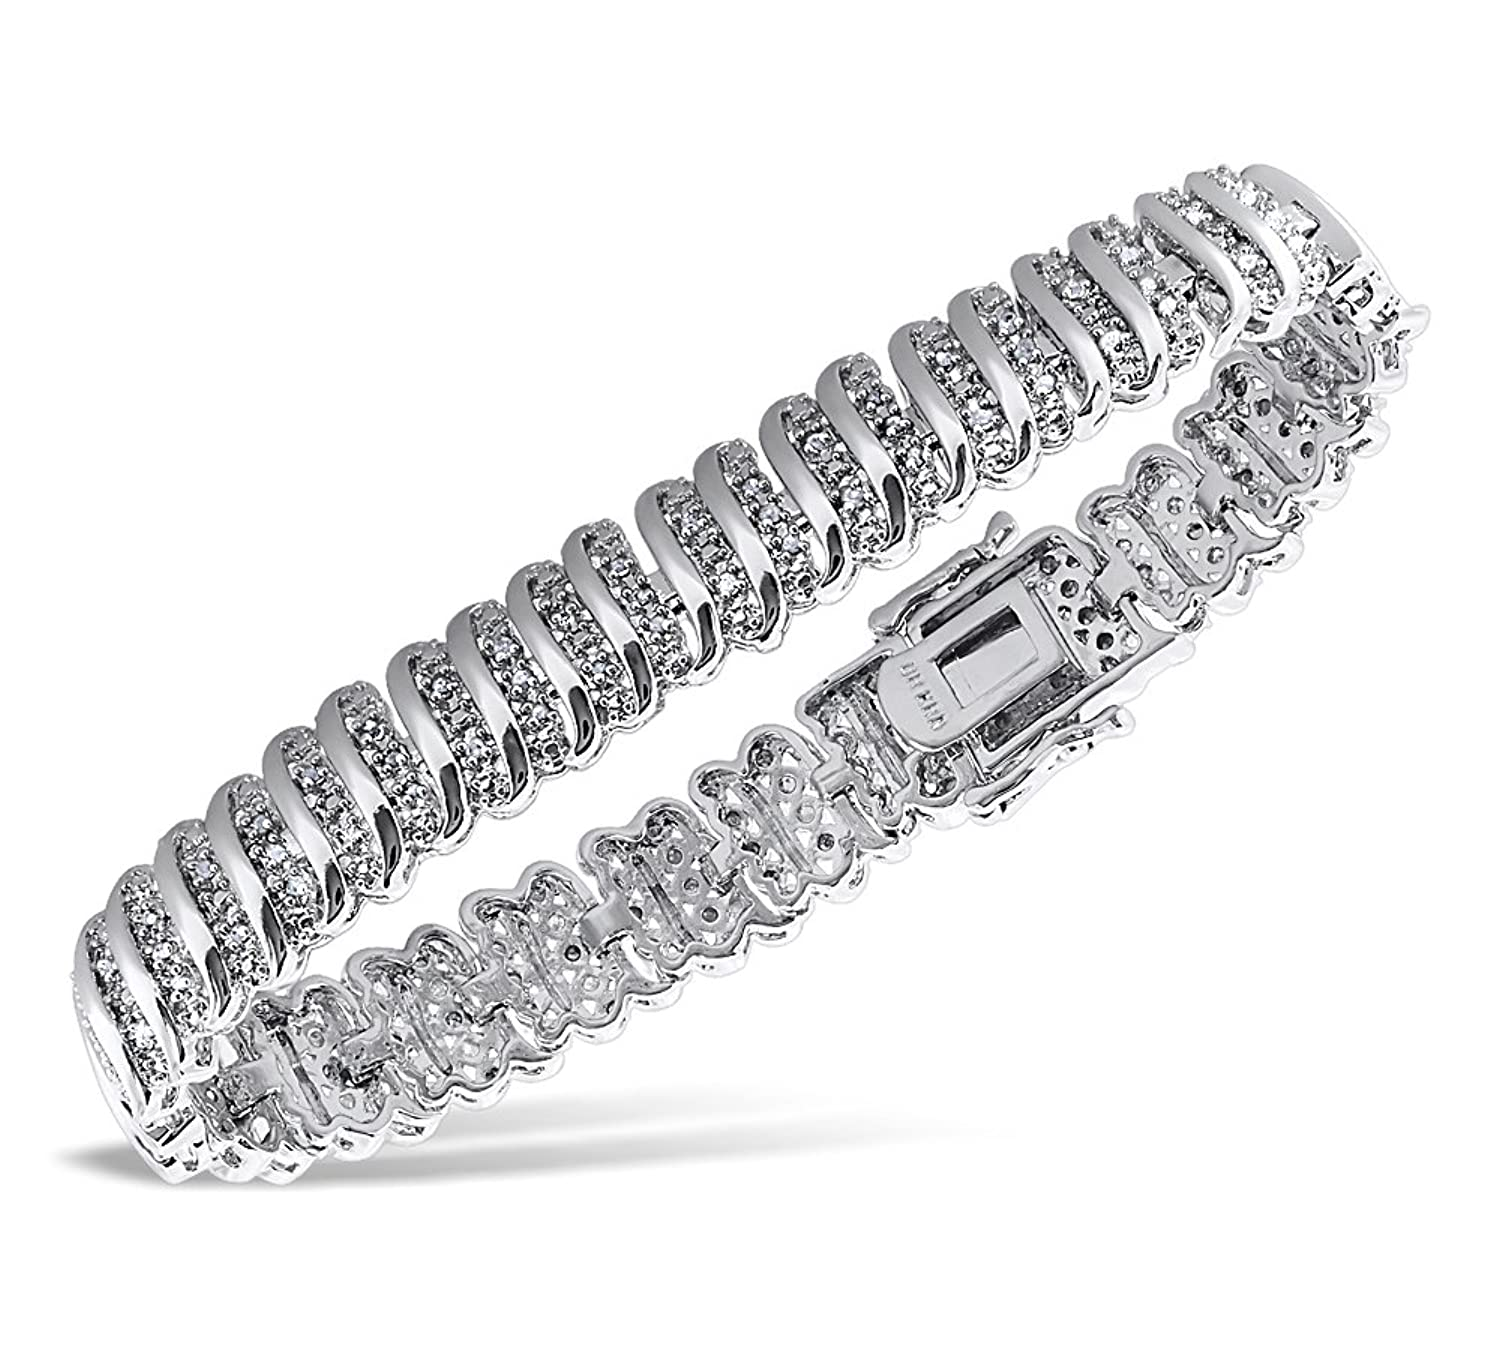 Ladies 2.00 CT Diamond 14K White Gold-Plated Brass S-Link Tennis Bracelet 5-10 Inches